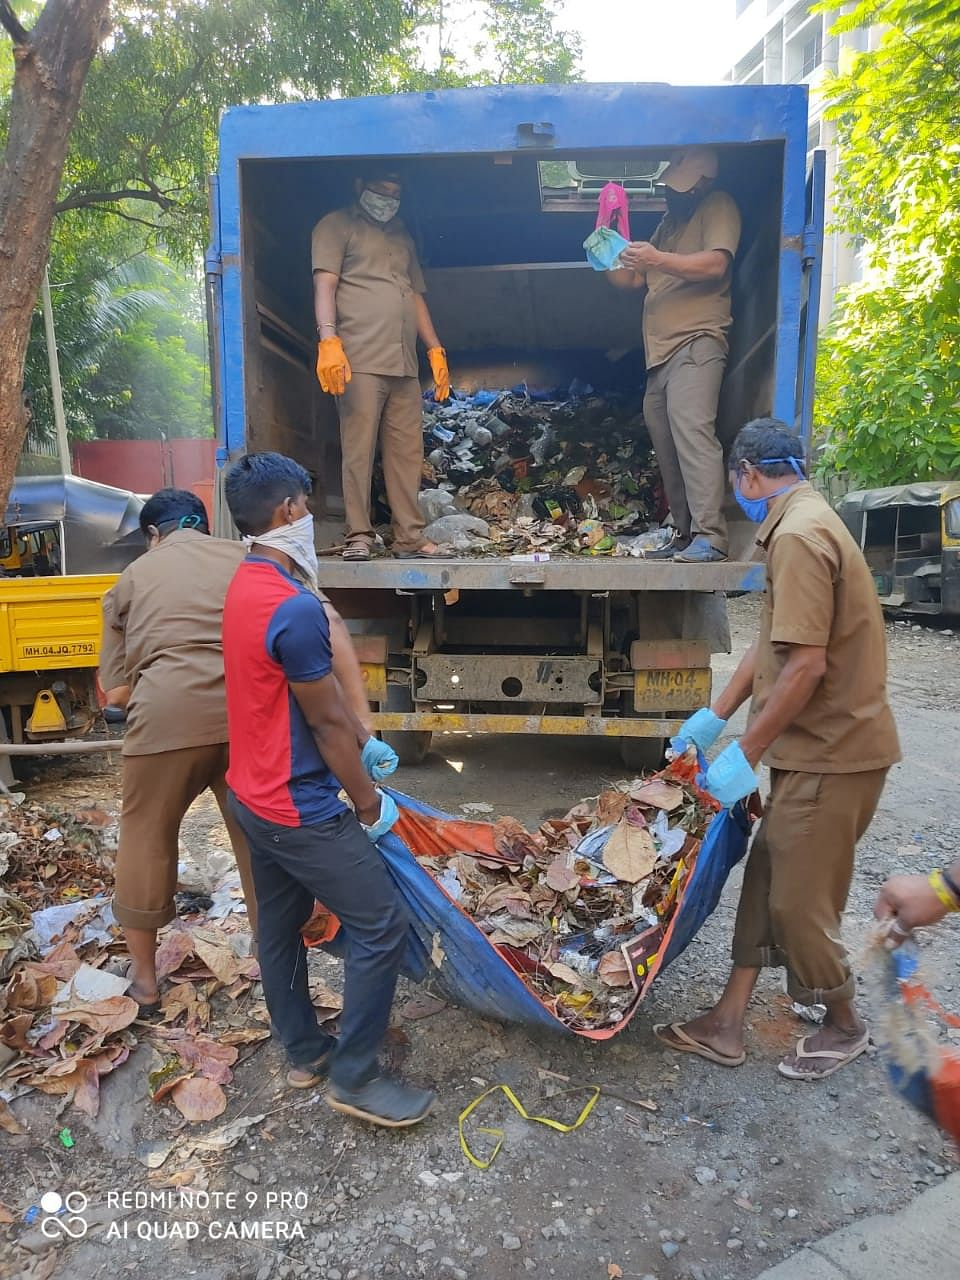 Thane: On Gandhi Jayanti, TMC announces 15-day cleanliness drive in the city